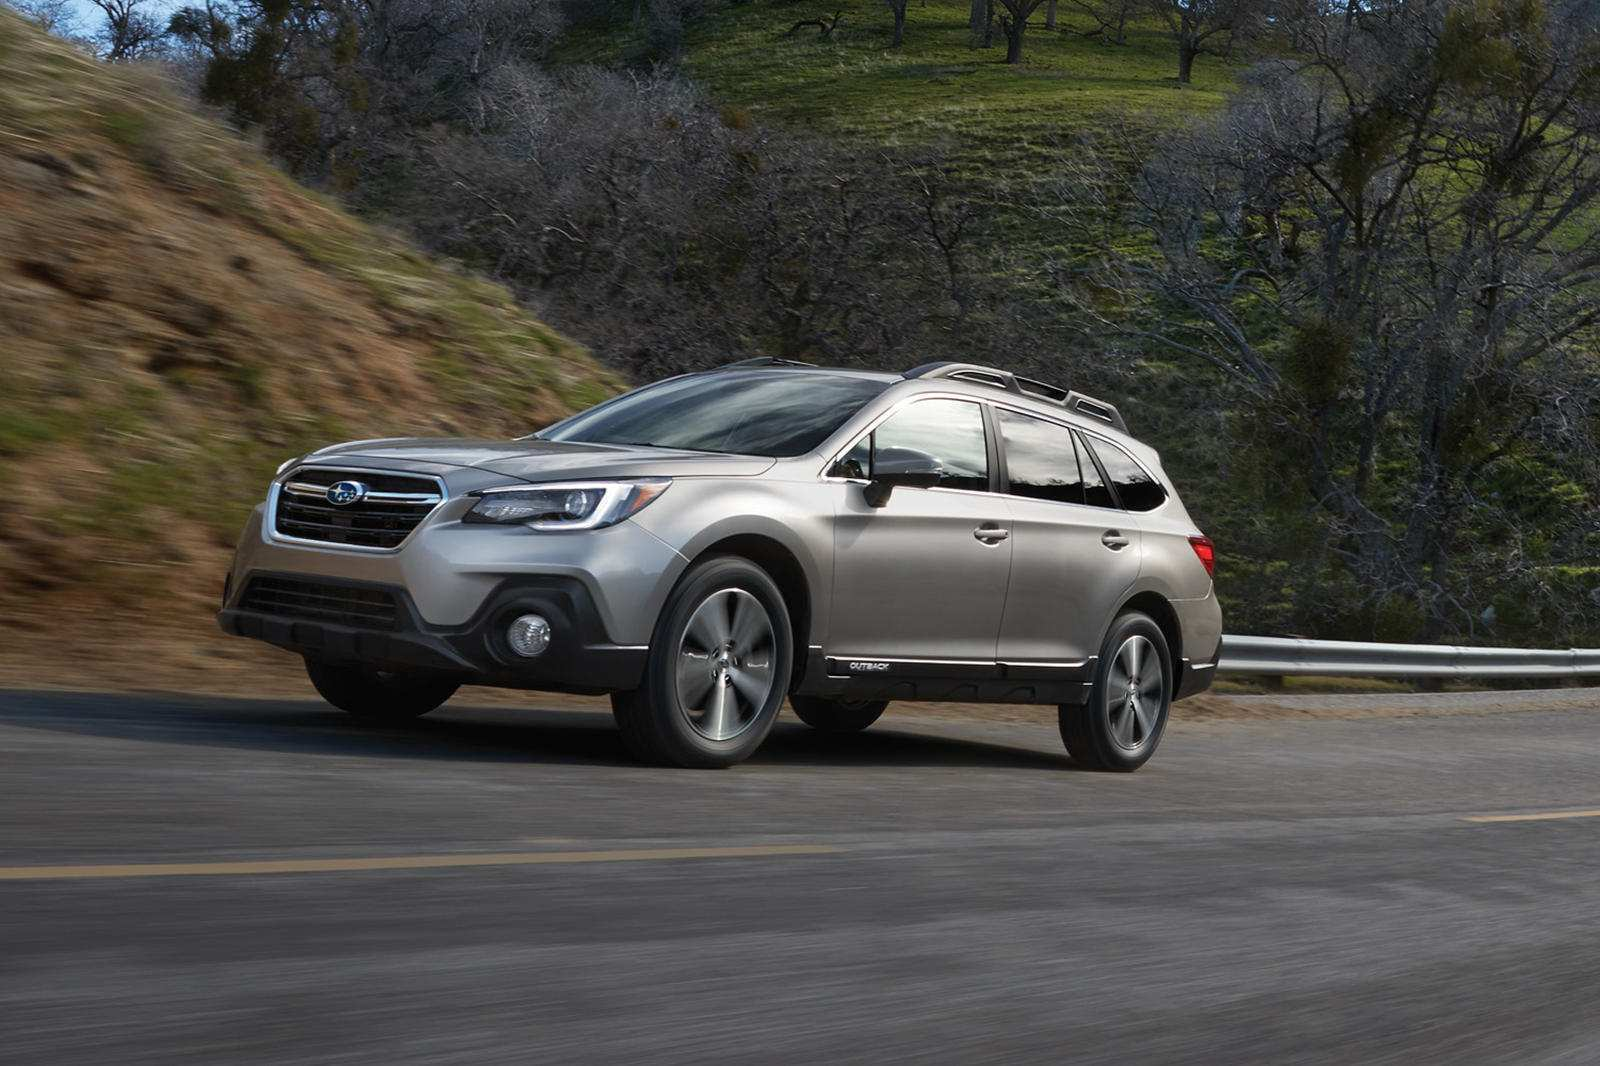 70 The Best 2020 Subaru Outback Price Design And Review